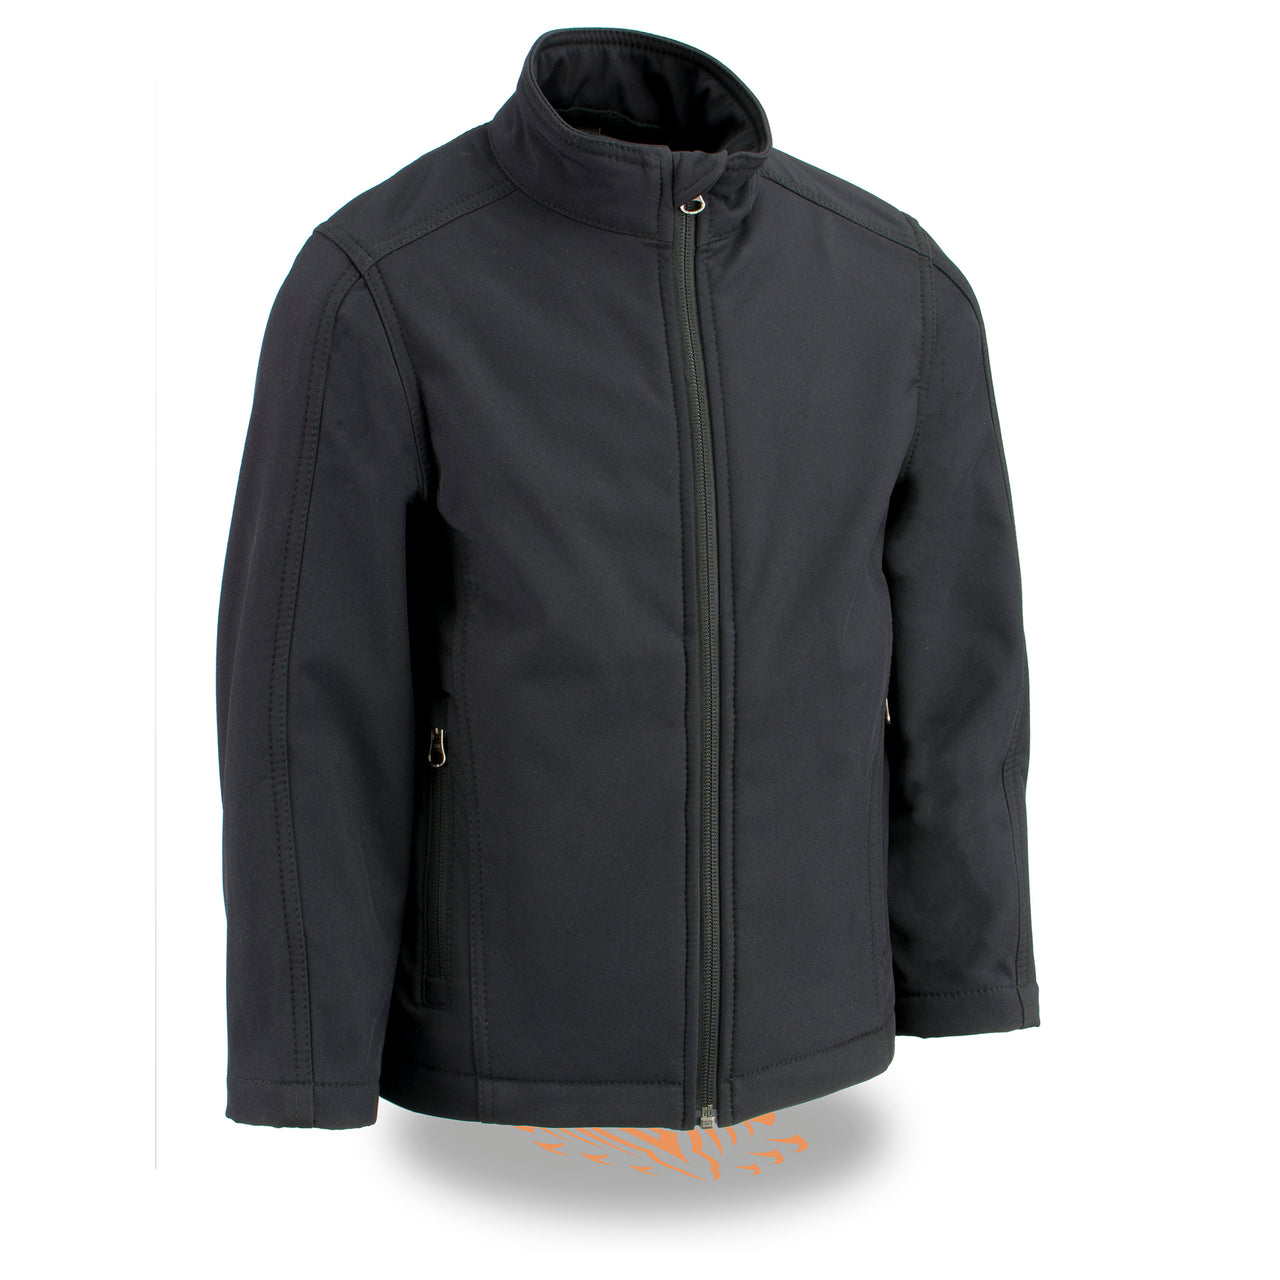 Youth Sized Waterproof Lightweight Zipper Front Soft Shell Jacket - HighwayLeather